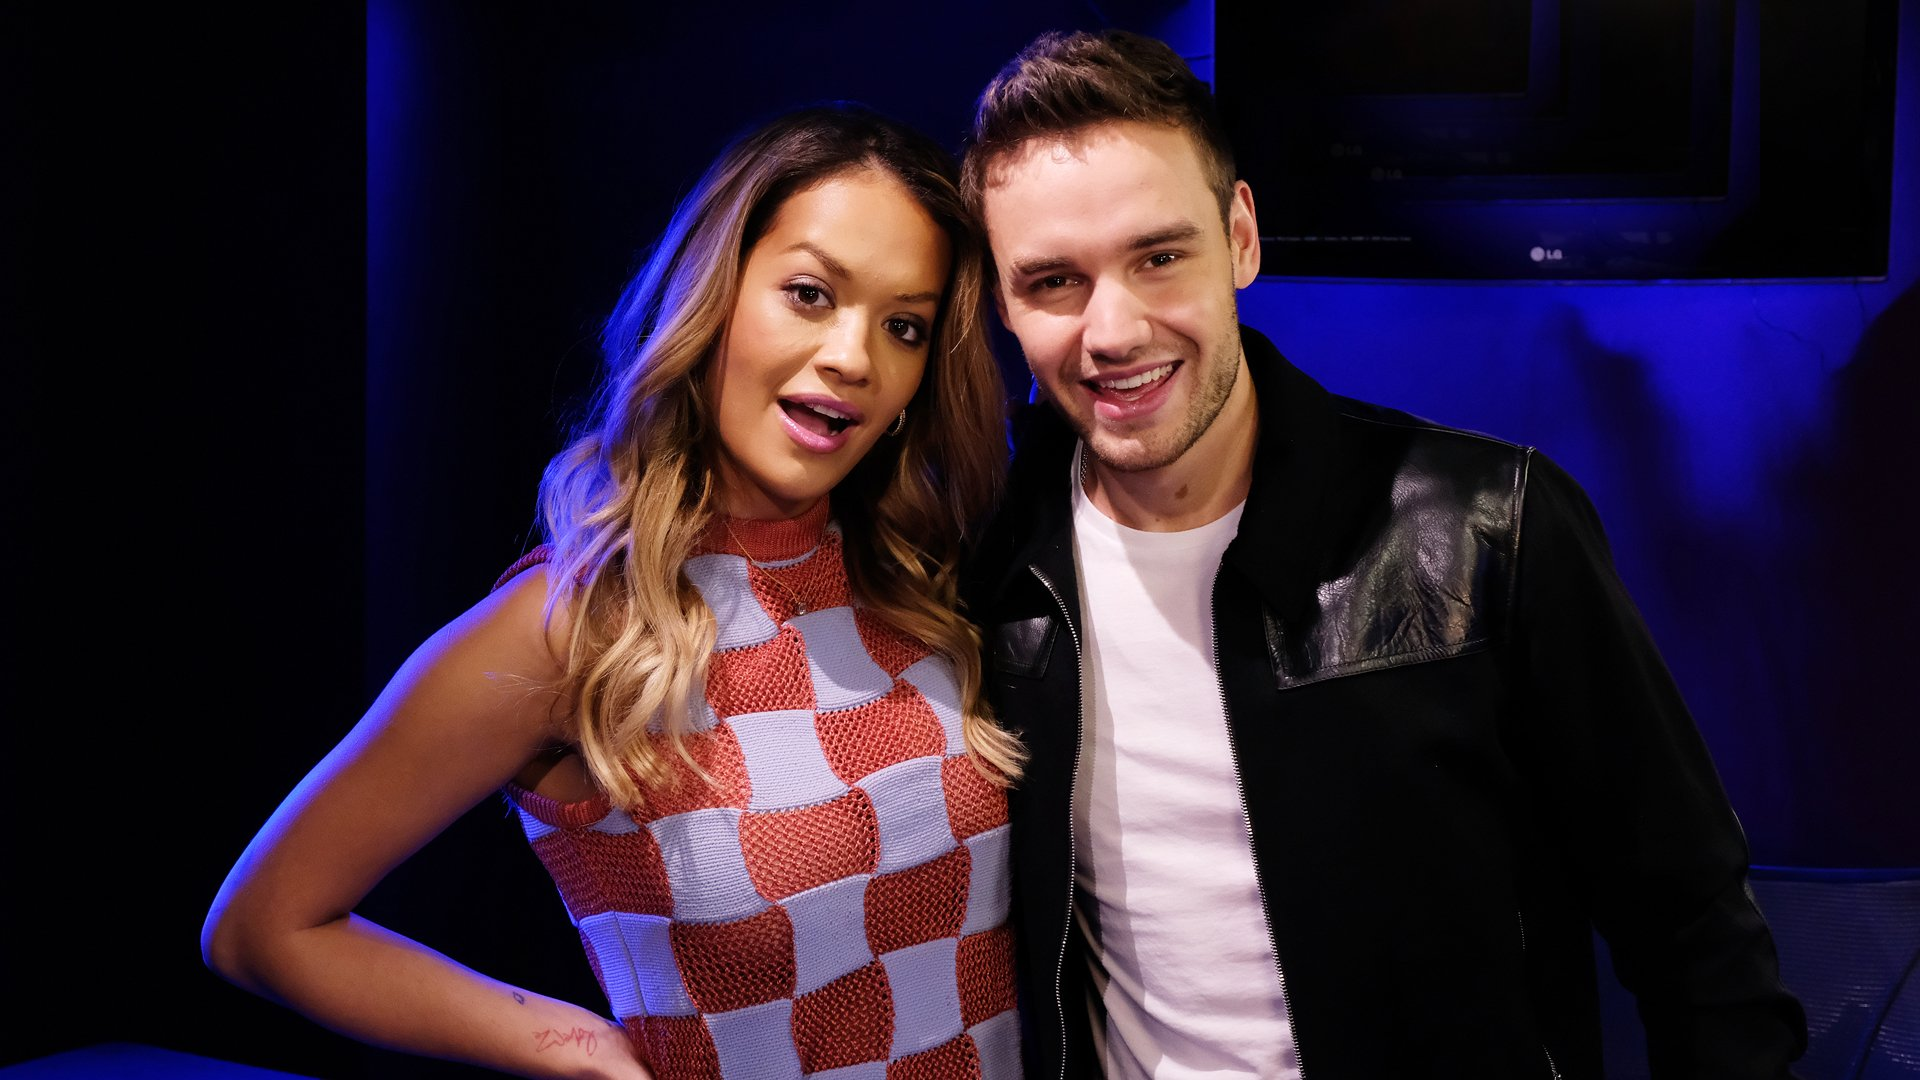 RT @R1Breakfast: This was good... @LiamPayne & @RitaOra on the Brekkie show this morning 🙌 https://t.co/xlMcLEeNkF